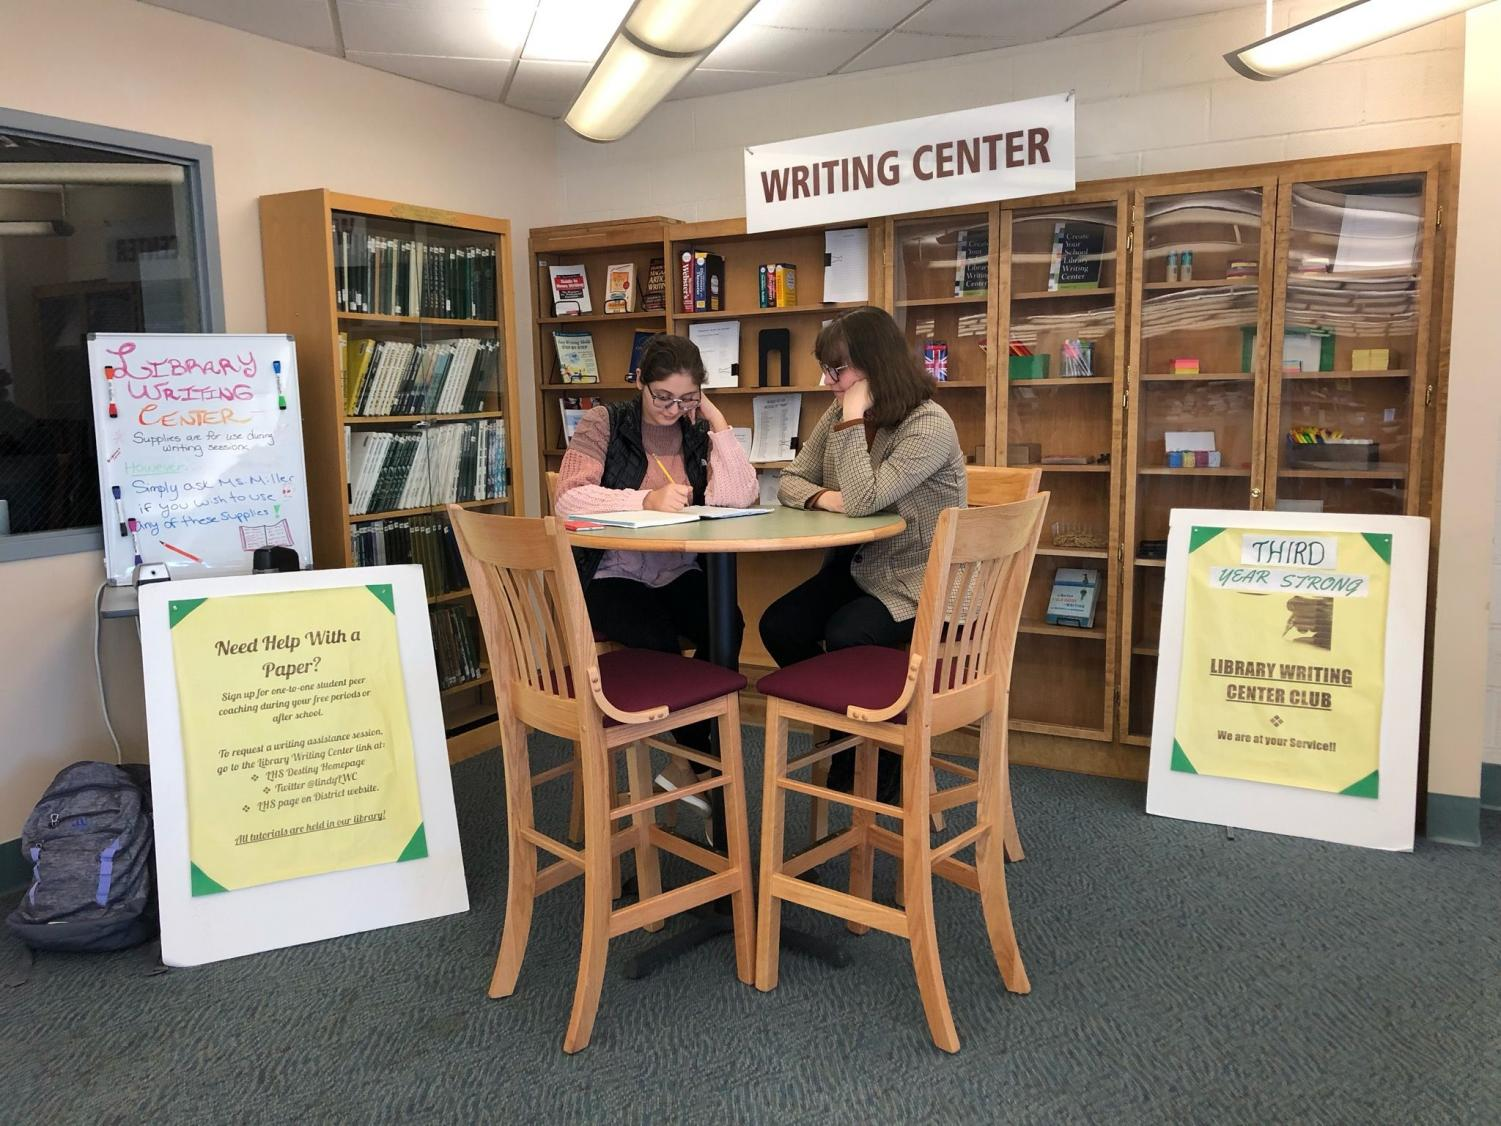 LMC Writing Center located in the Library right here at LHS!